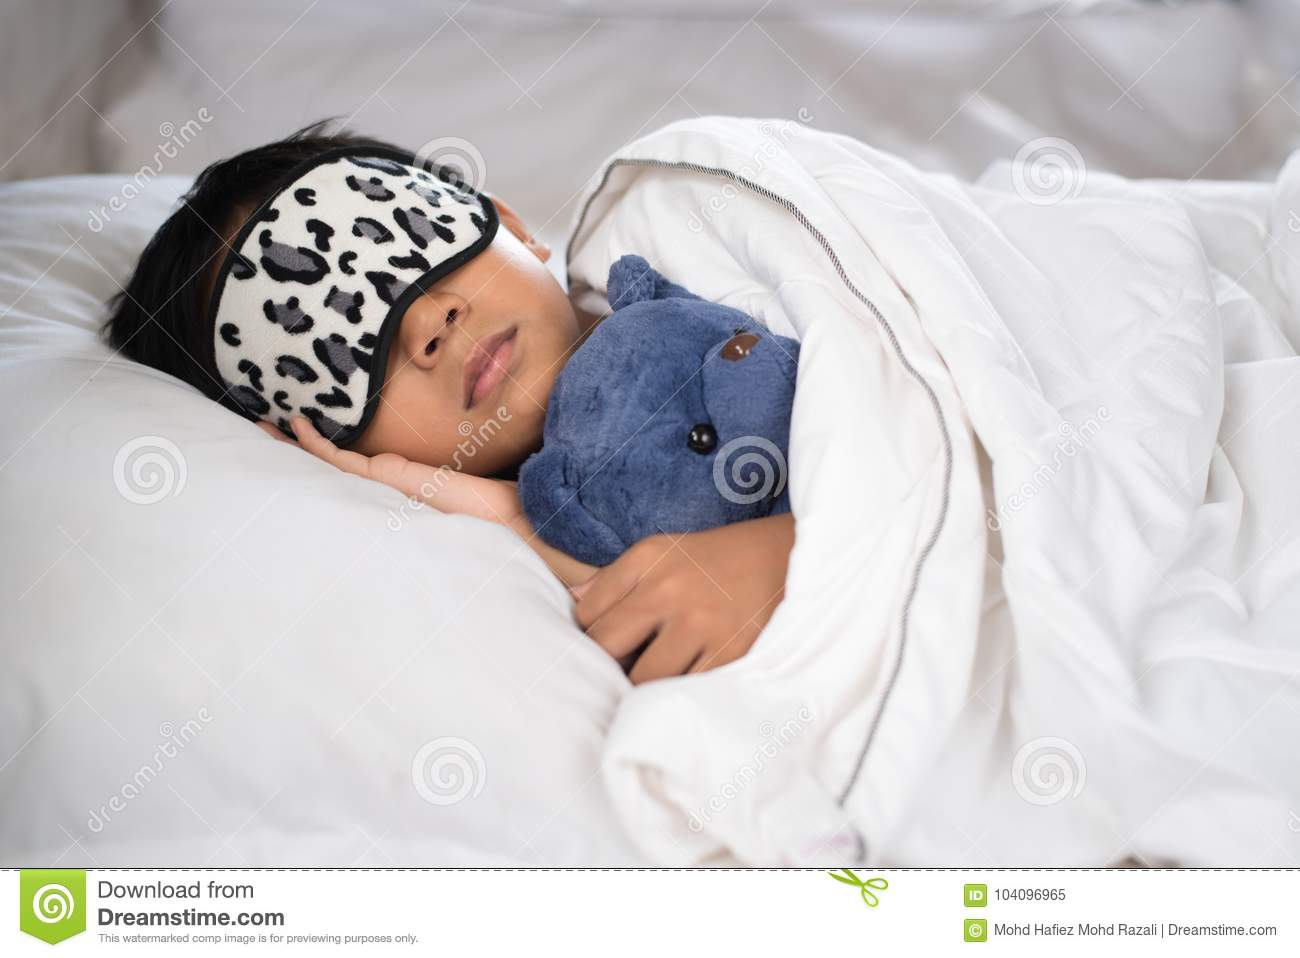 2d76615e8 Boy sleeping on bed with teddy bear white pillow and sheets wearing sleep  mask.boy fall asleep in morning.sleep concept